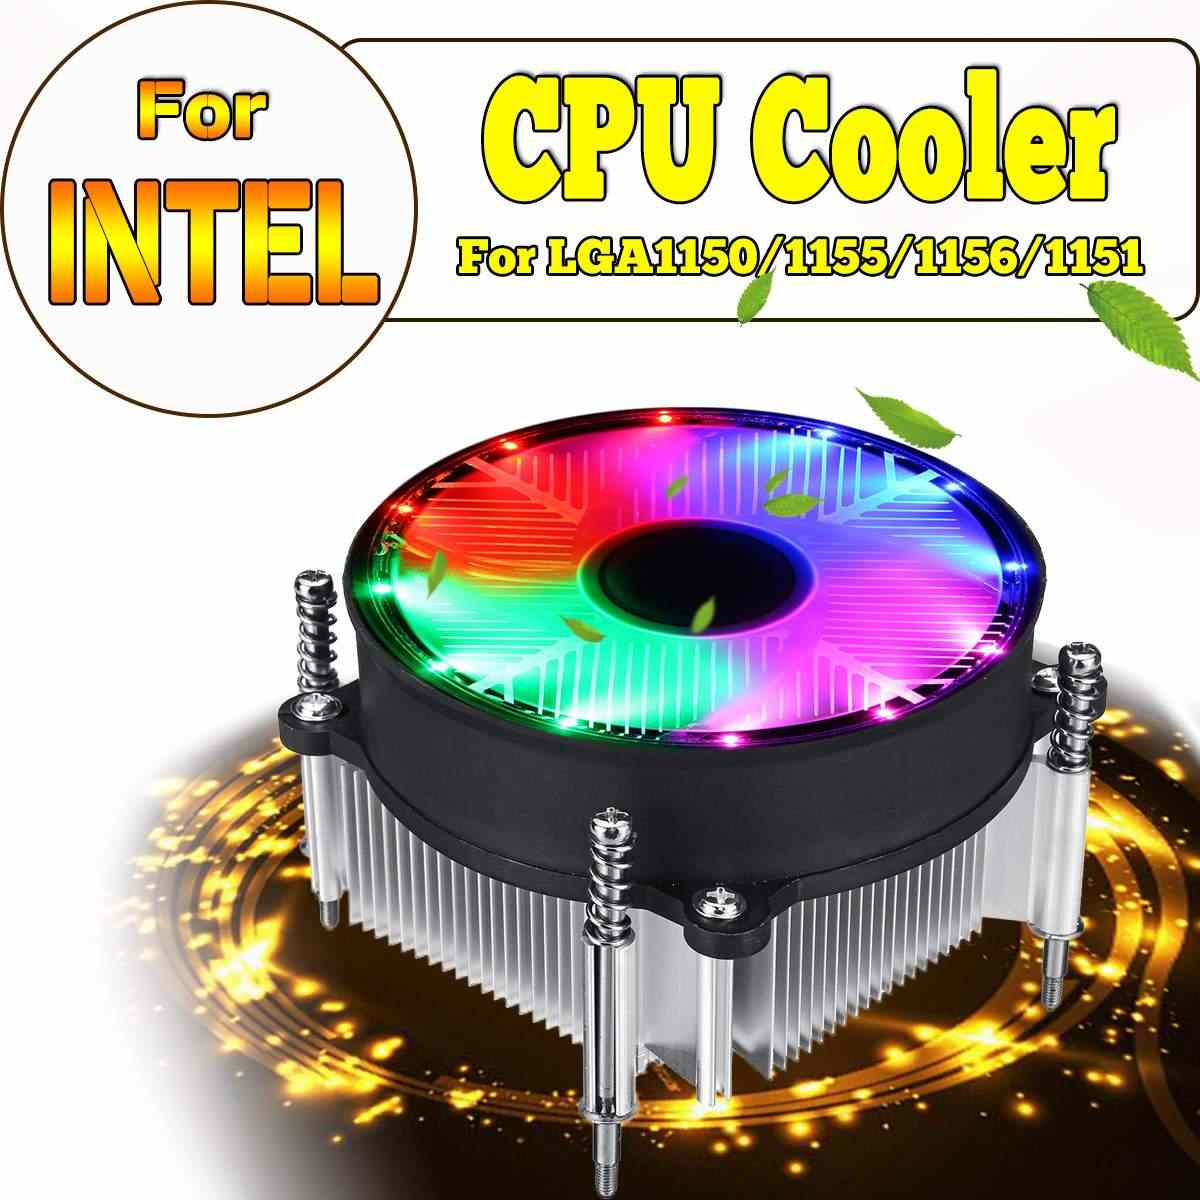 For Intel CPU Cooler Cooling Fan LED Silence 3Pin Fan Radiator Heatsink Cooler Support for Intel 115X Series 1150 1155 1156 1151